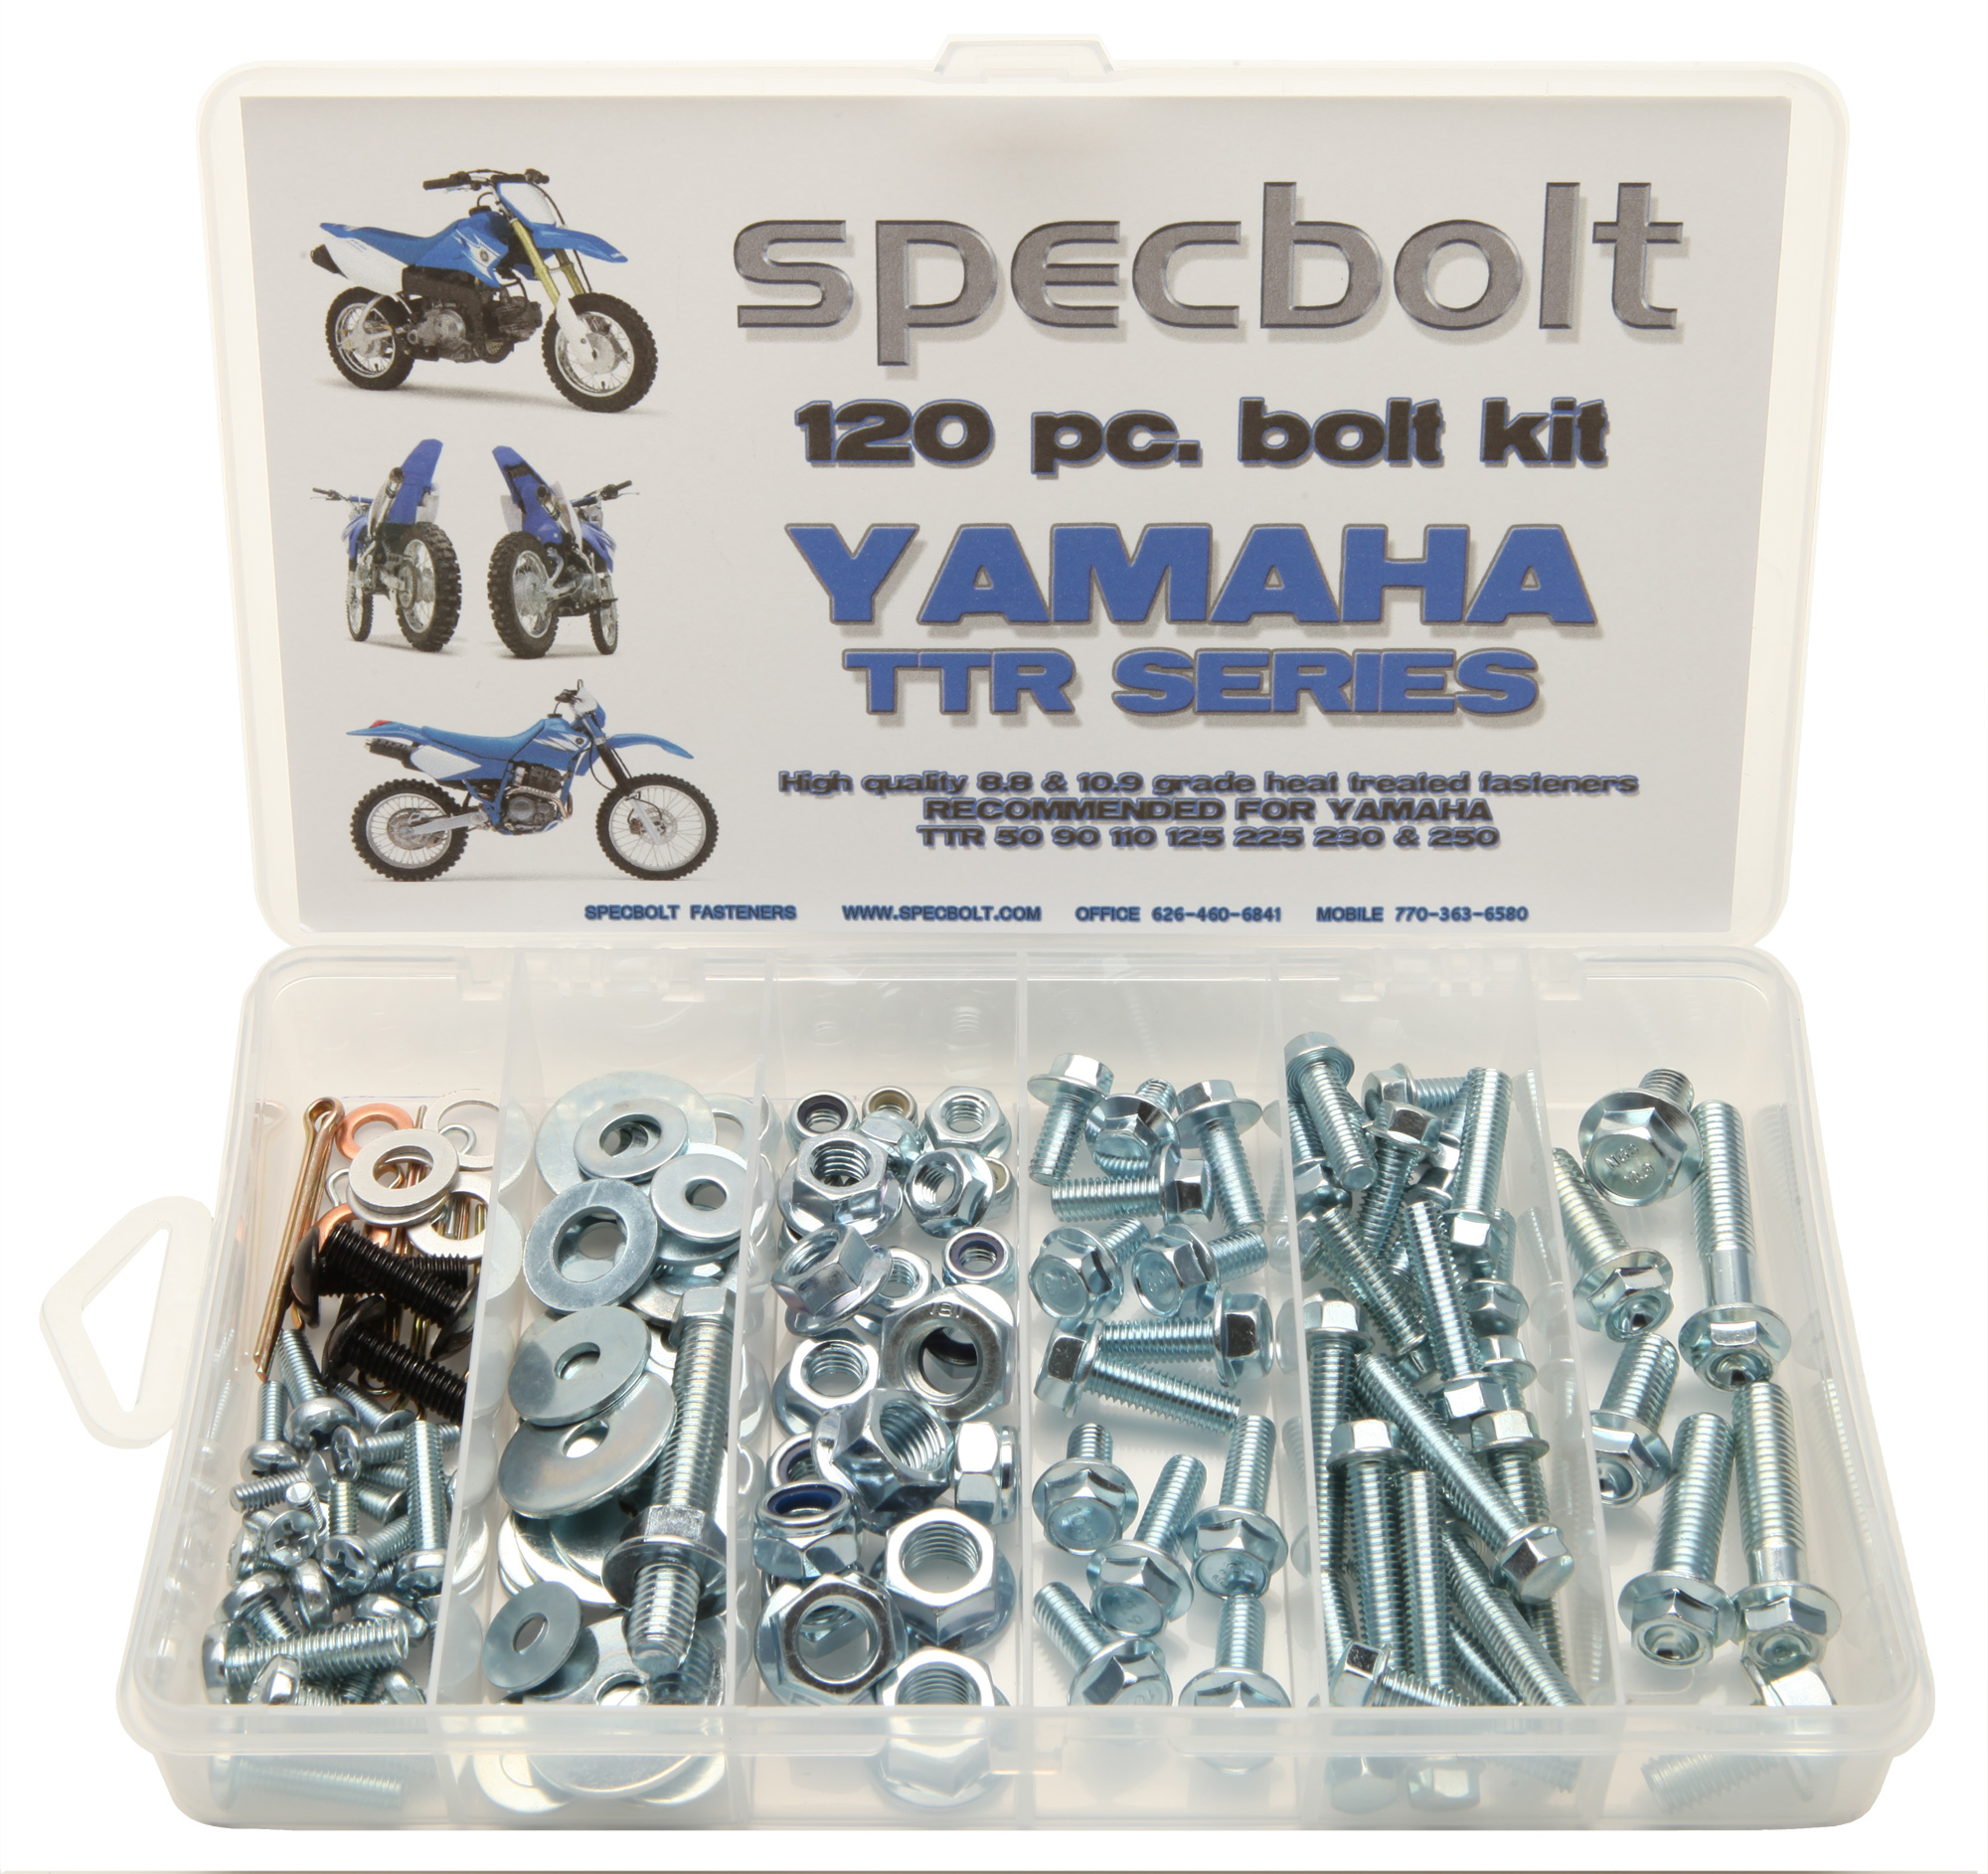 timeless design 81bac 35ea7 ... help you maintain and restore your TTR50 TTR90 TTR110 TTR125 TTR225  TTR230 and TTR250 using only the original type fasteners. Specbolt s OEM  style bolts ...